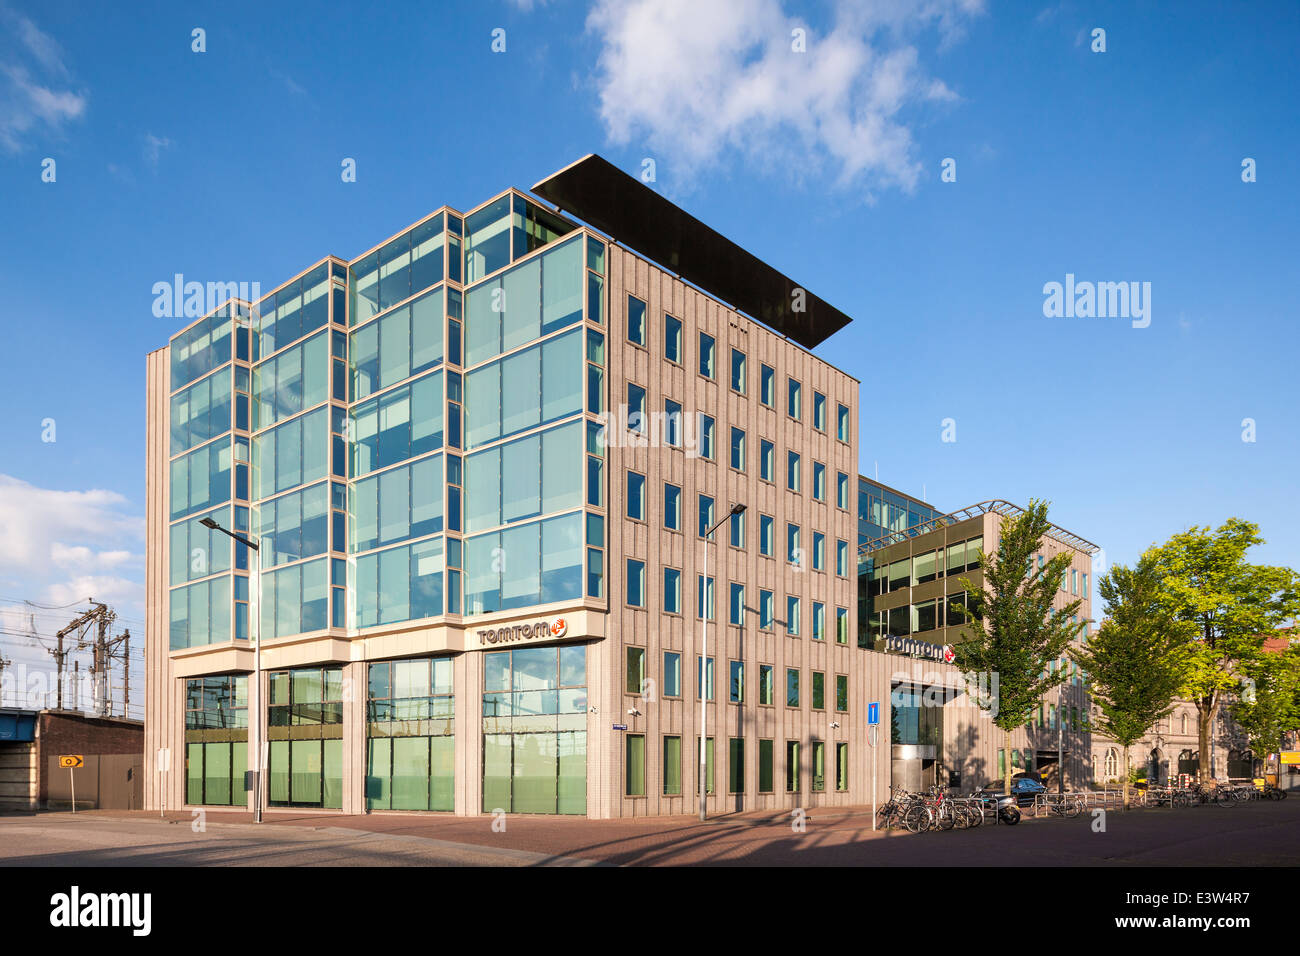 TomTom Amsterdam, HQ, headquarters, head office. Dutch manufacturer of  automotive navigation systems